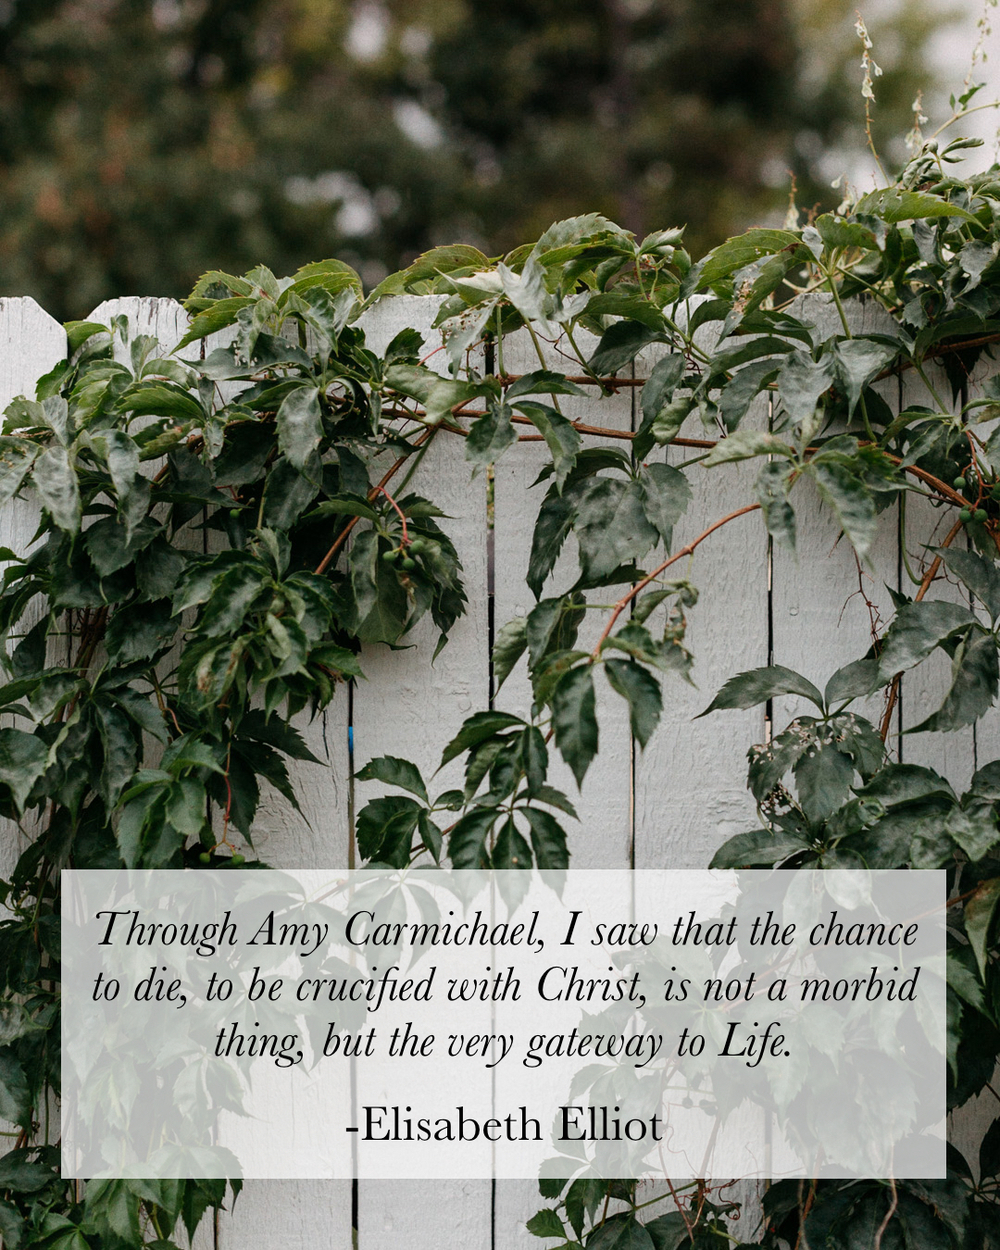 """Green vines growing next to a white fence. Elisabeth Elliot speaking of Amy Carmichael: """"Through Amy Carmichael I saw that the change to die, to be crucifed with Christ, is not a morbid thing, but the very gateway to Life."""""""